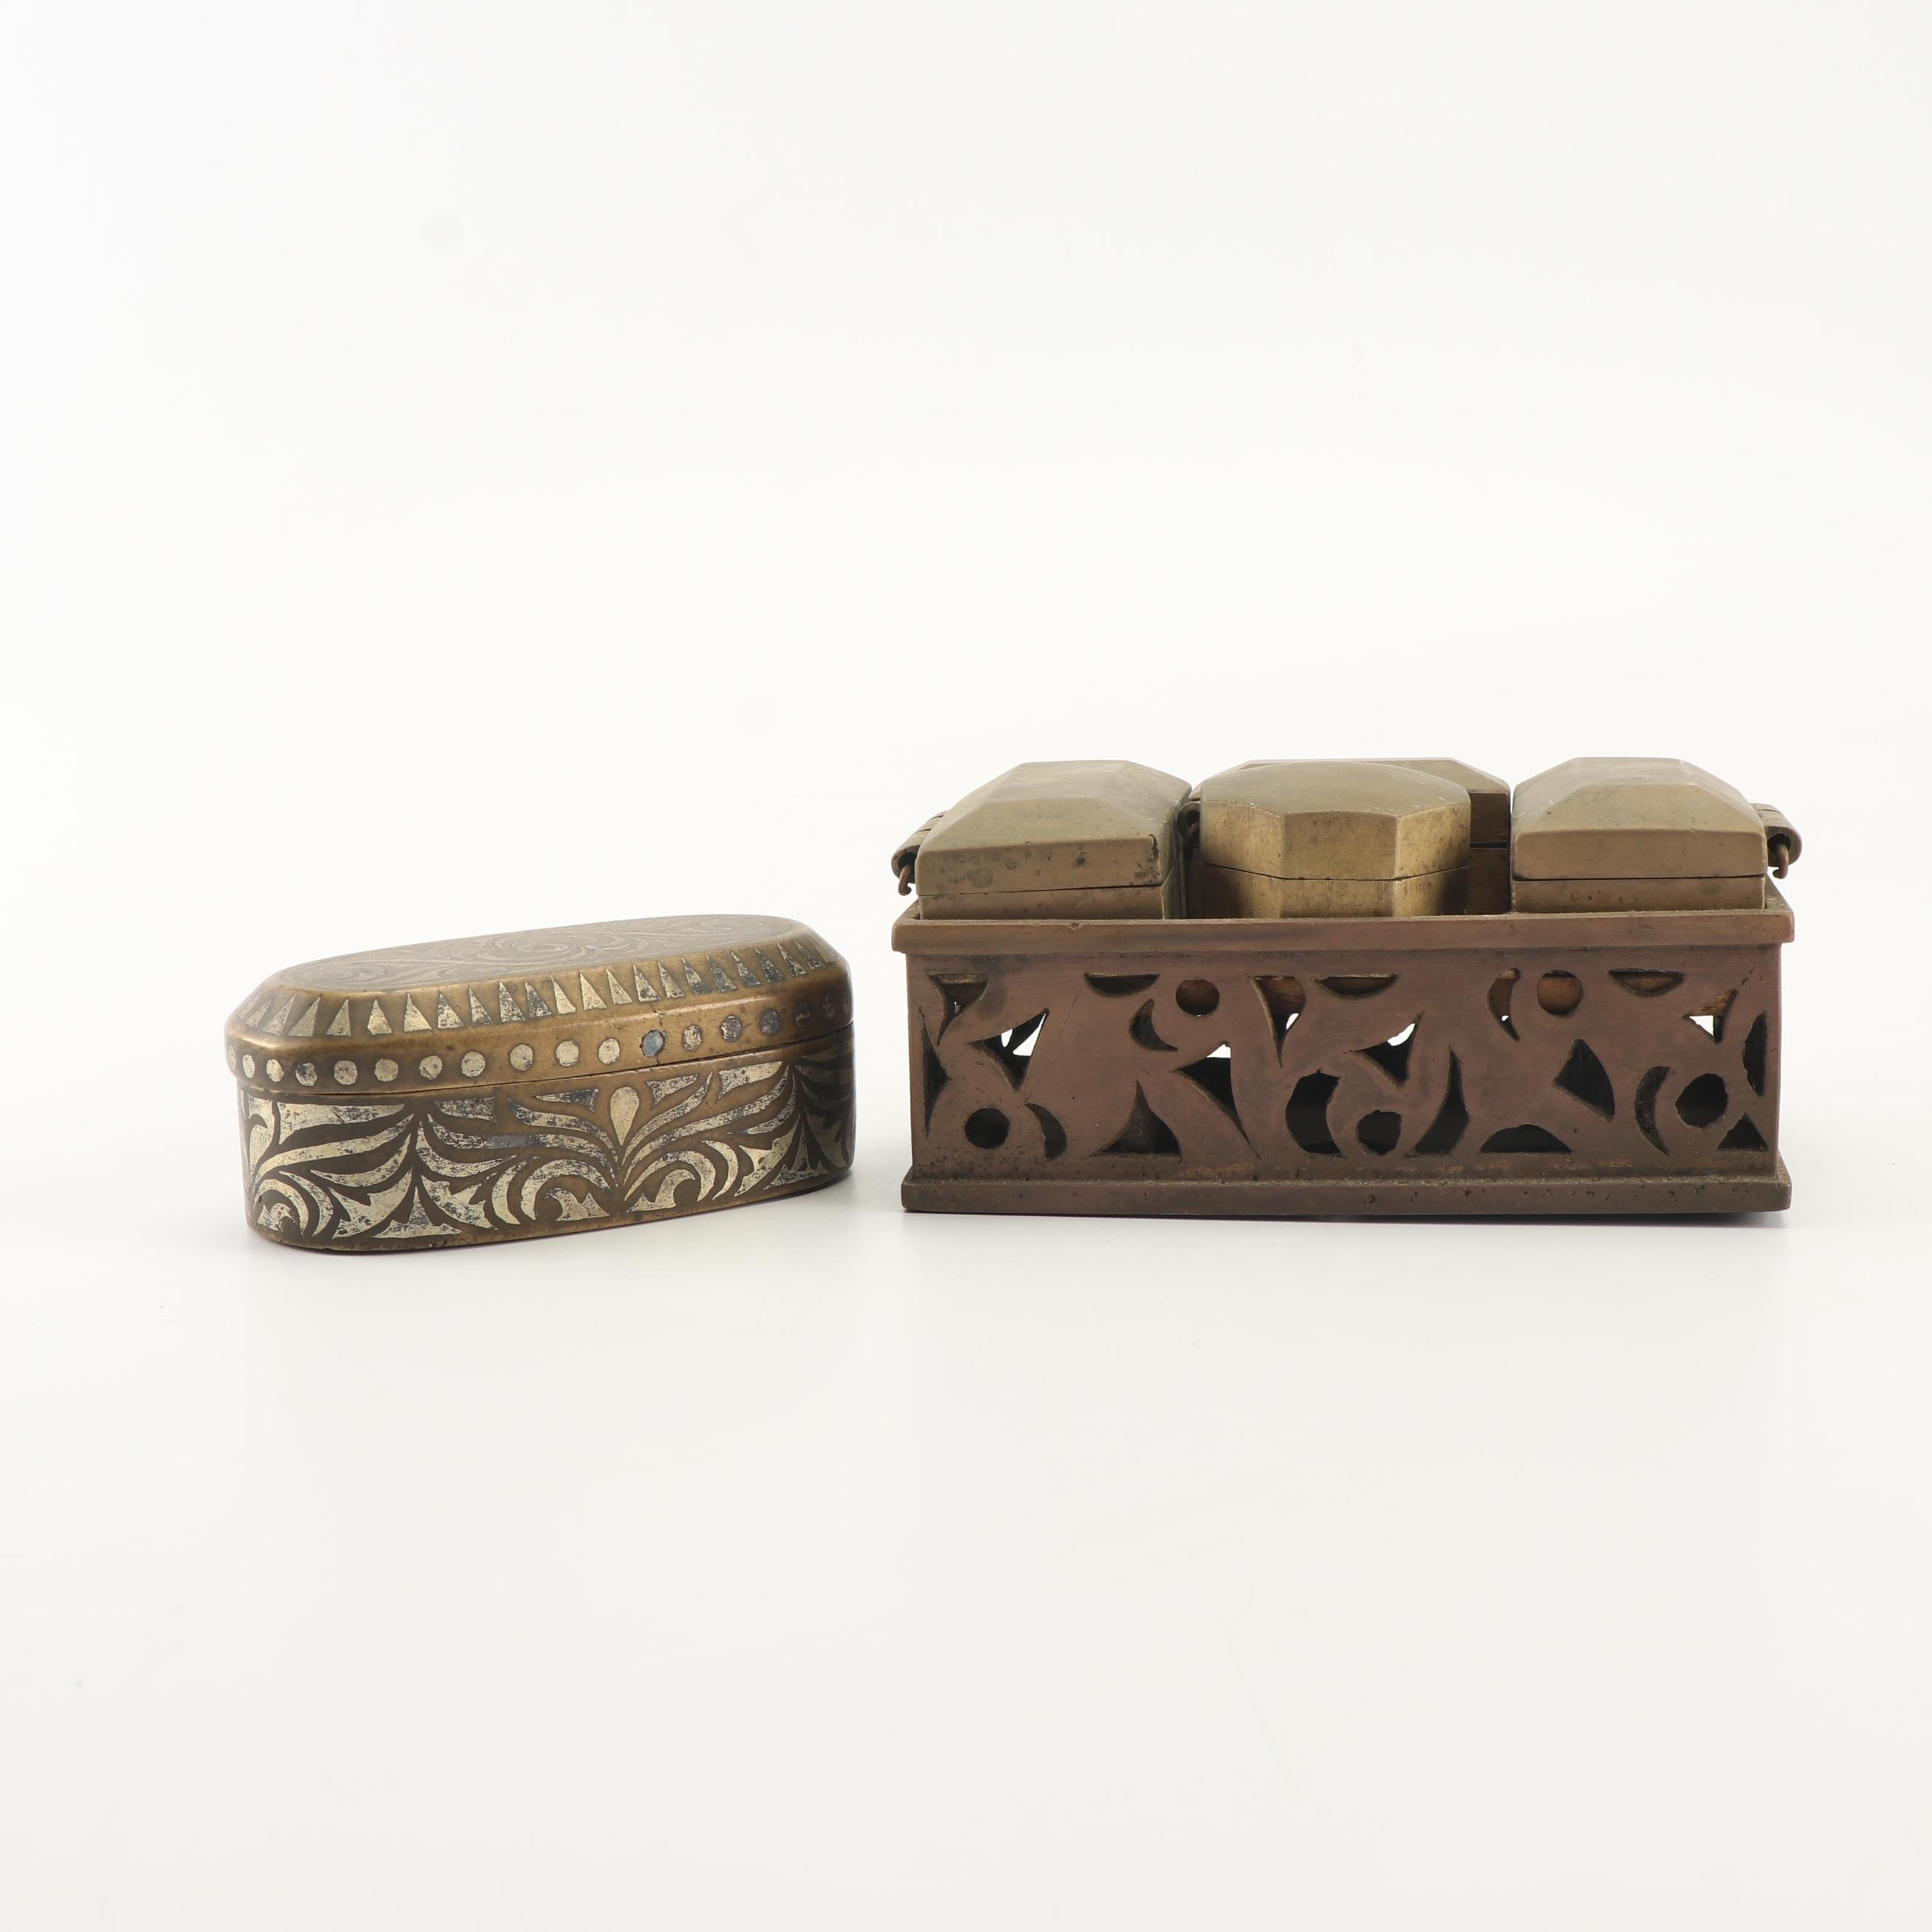 West Asian Style Betel Nut Boxes